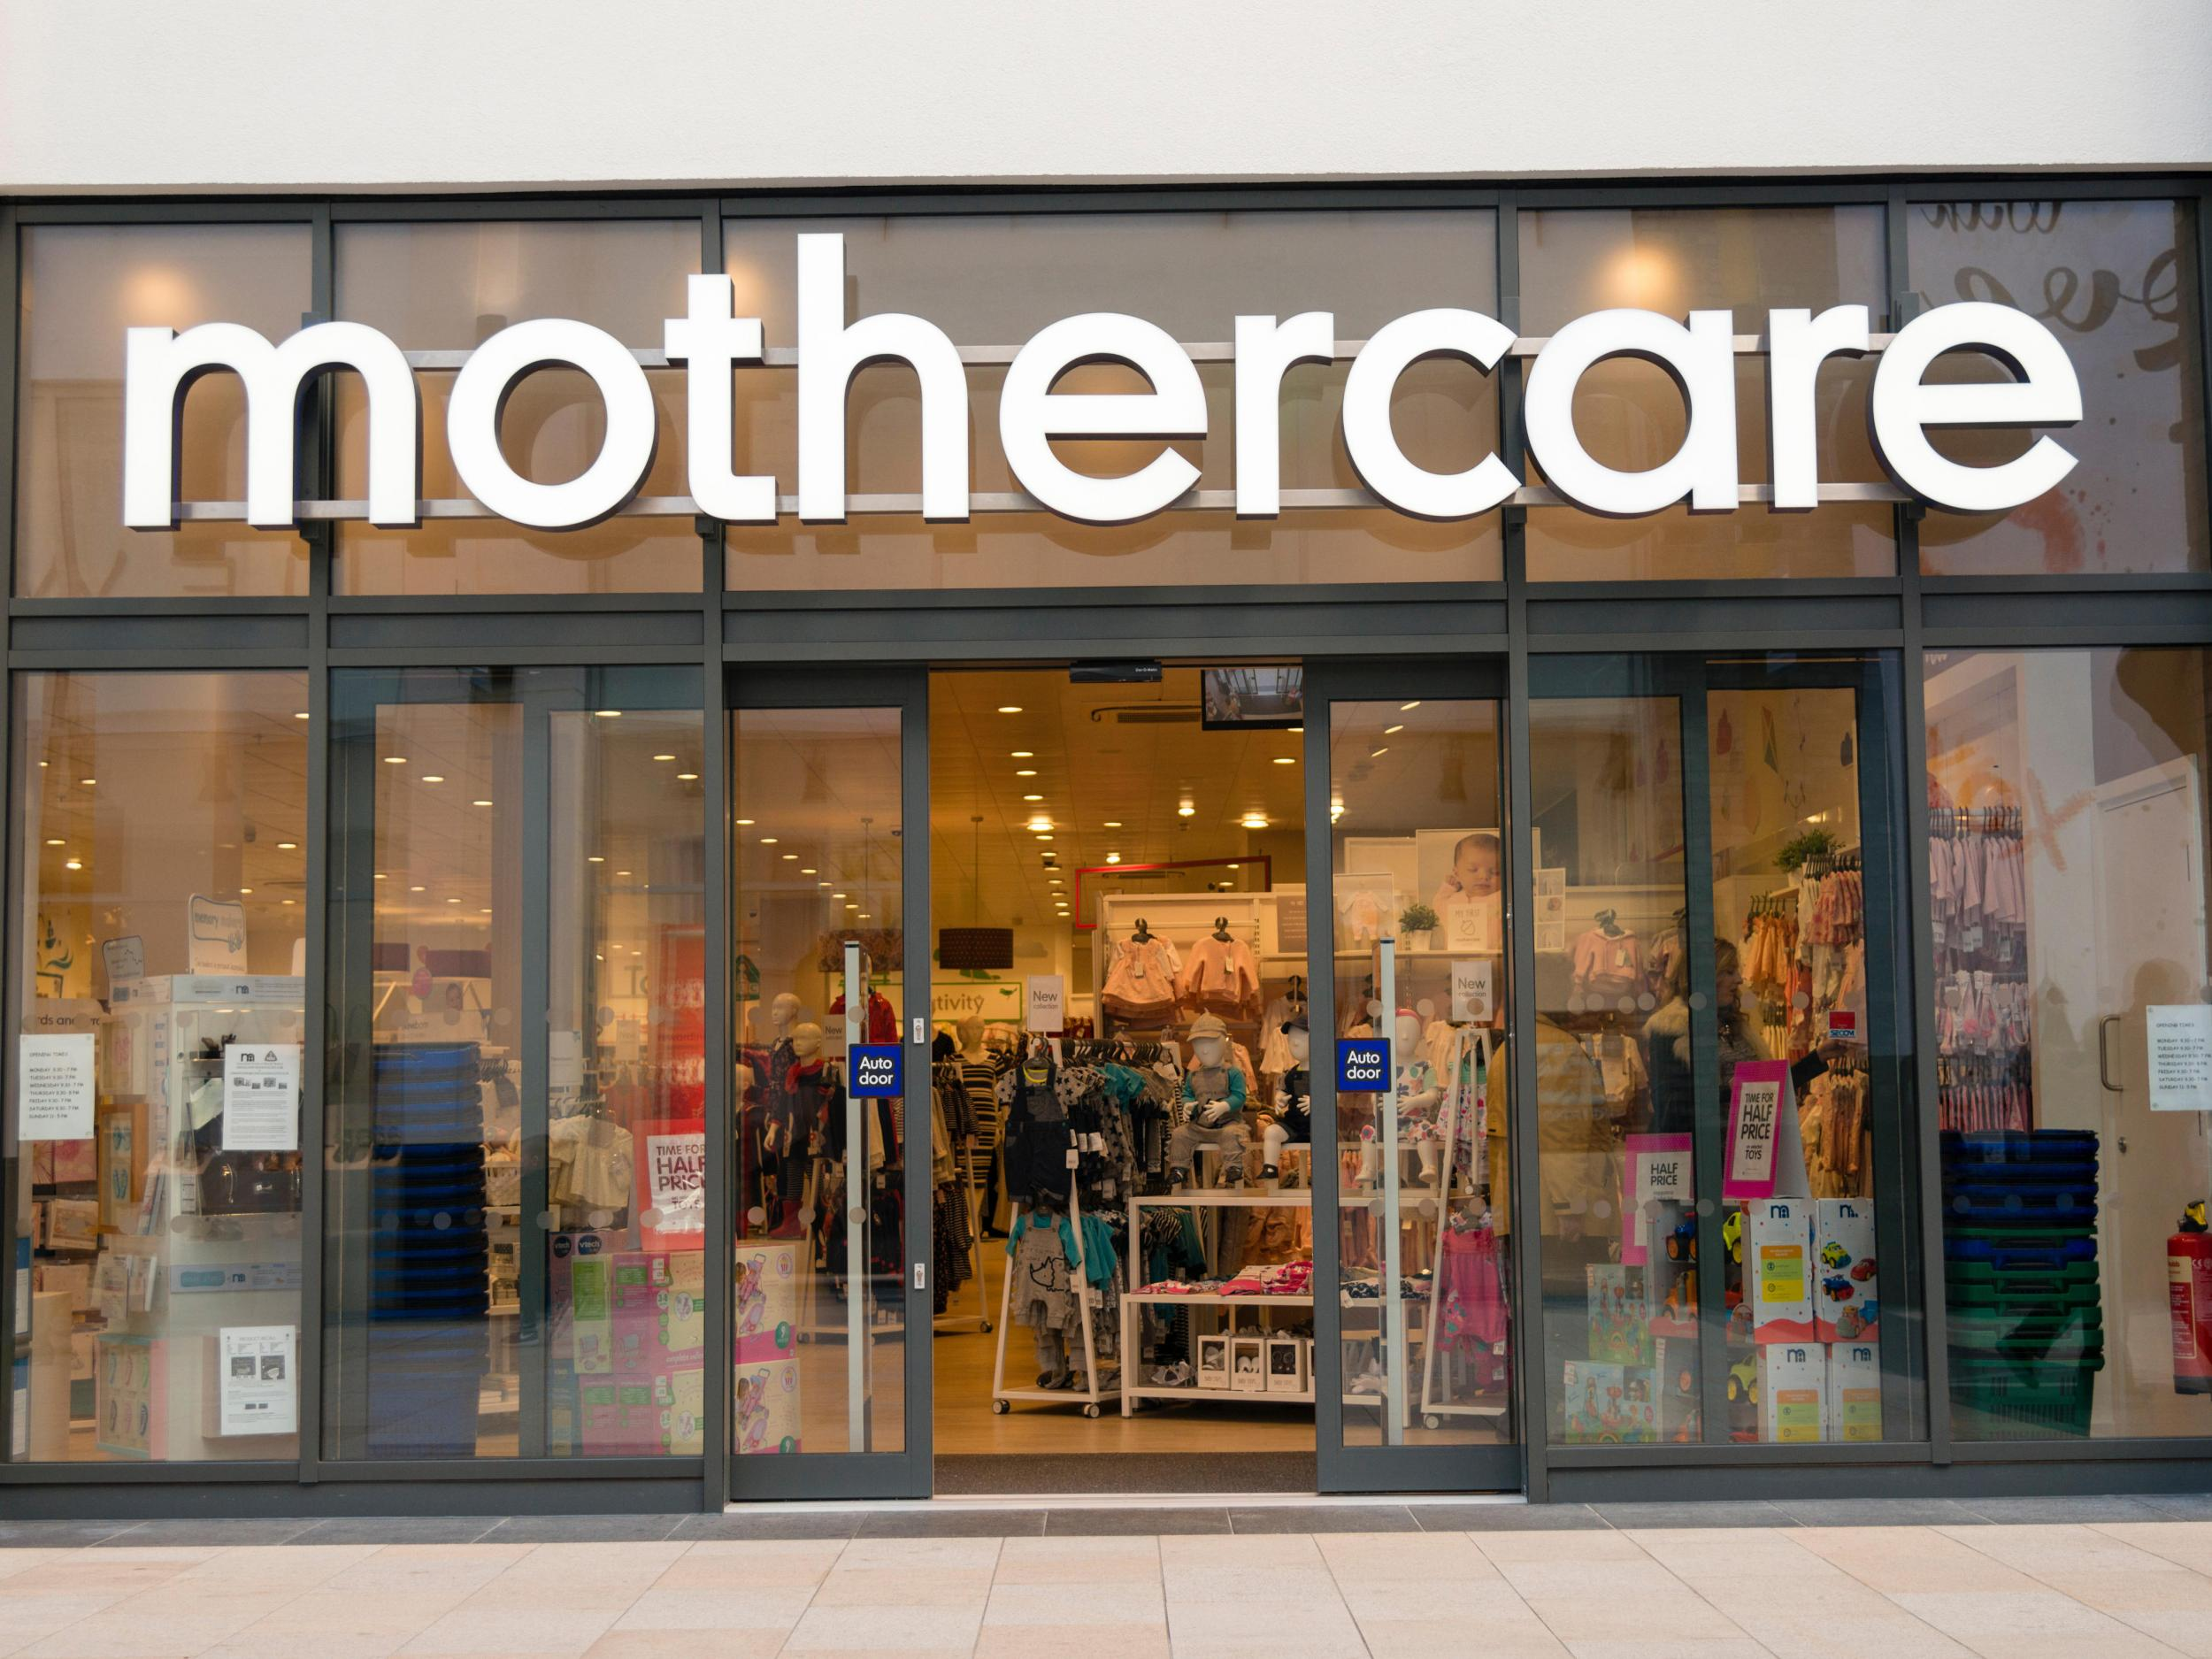 191104124938_mothercare